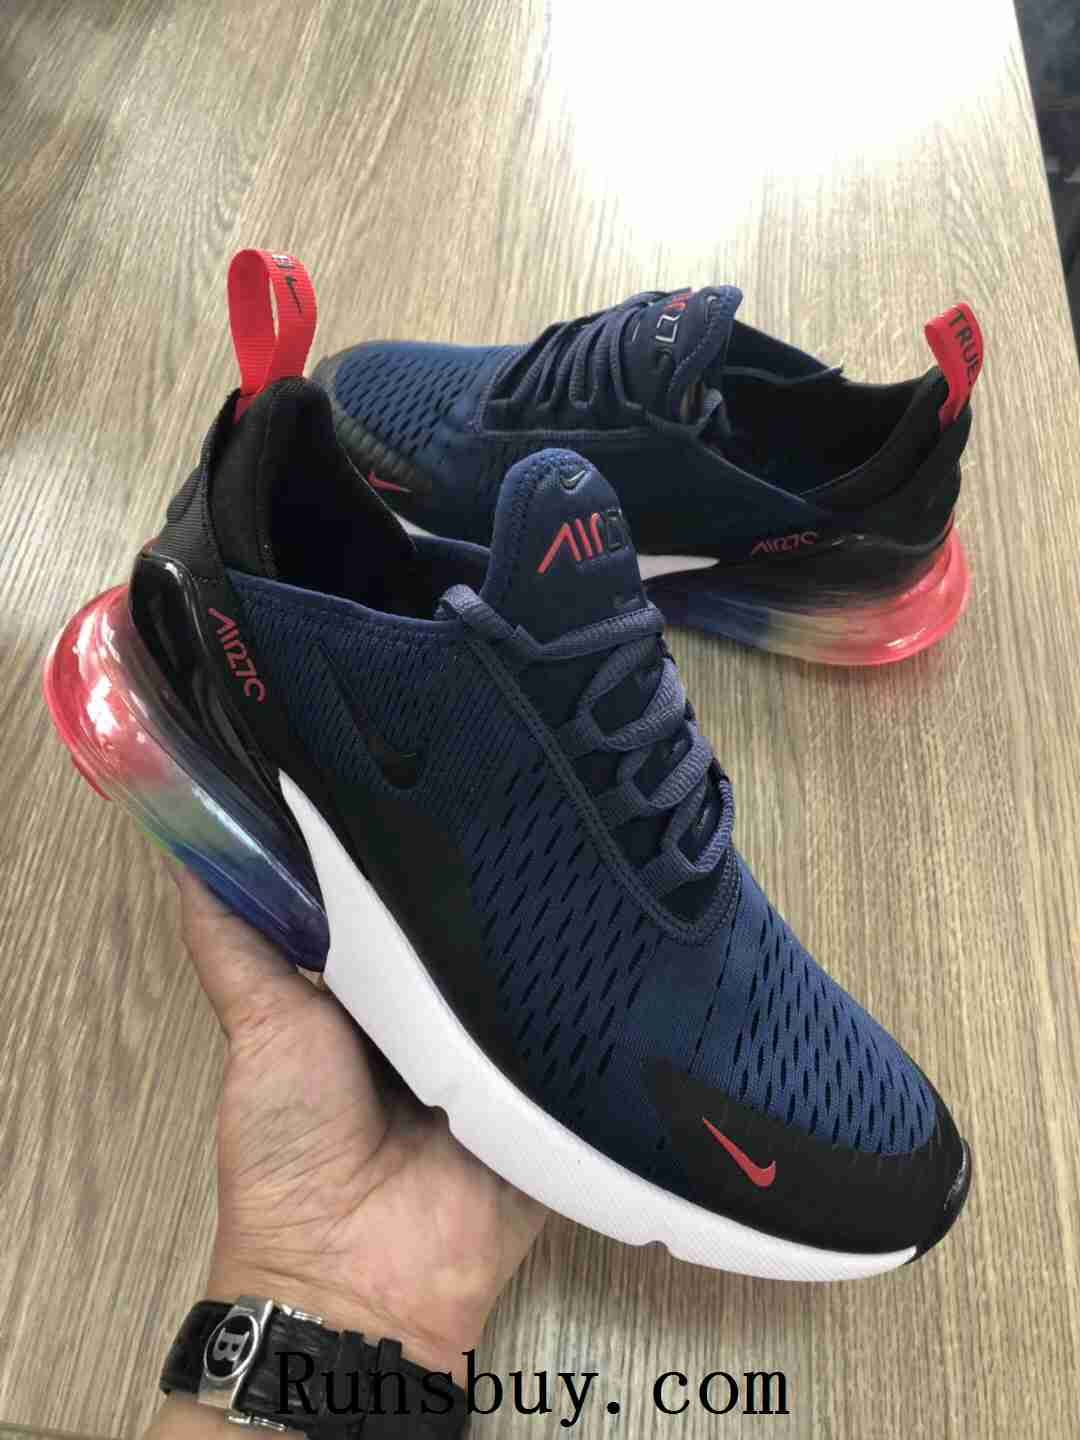 b1abc7c2ded Nike Air Max 270 Betrue Blue Black Rainbow Women Men Running Shoes ...